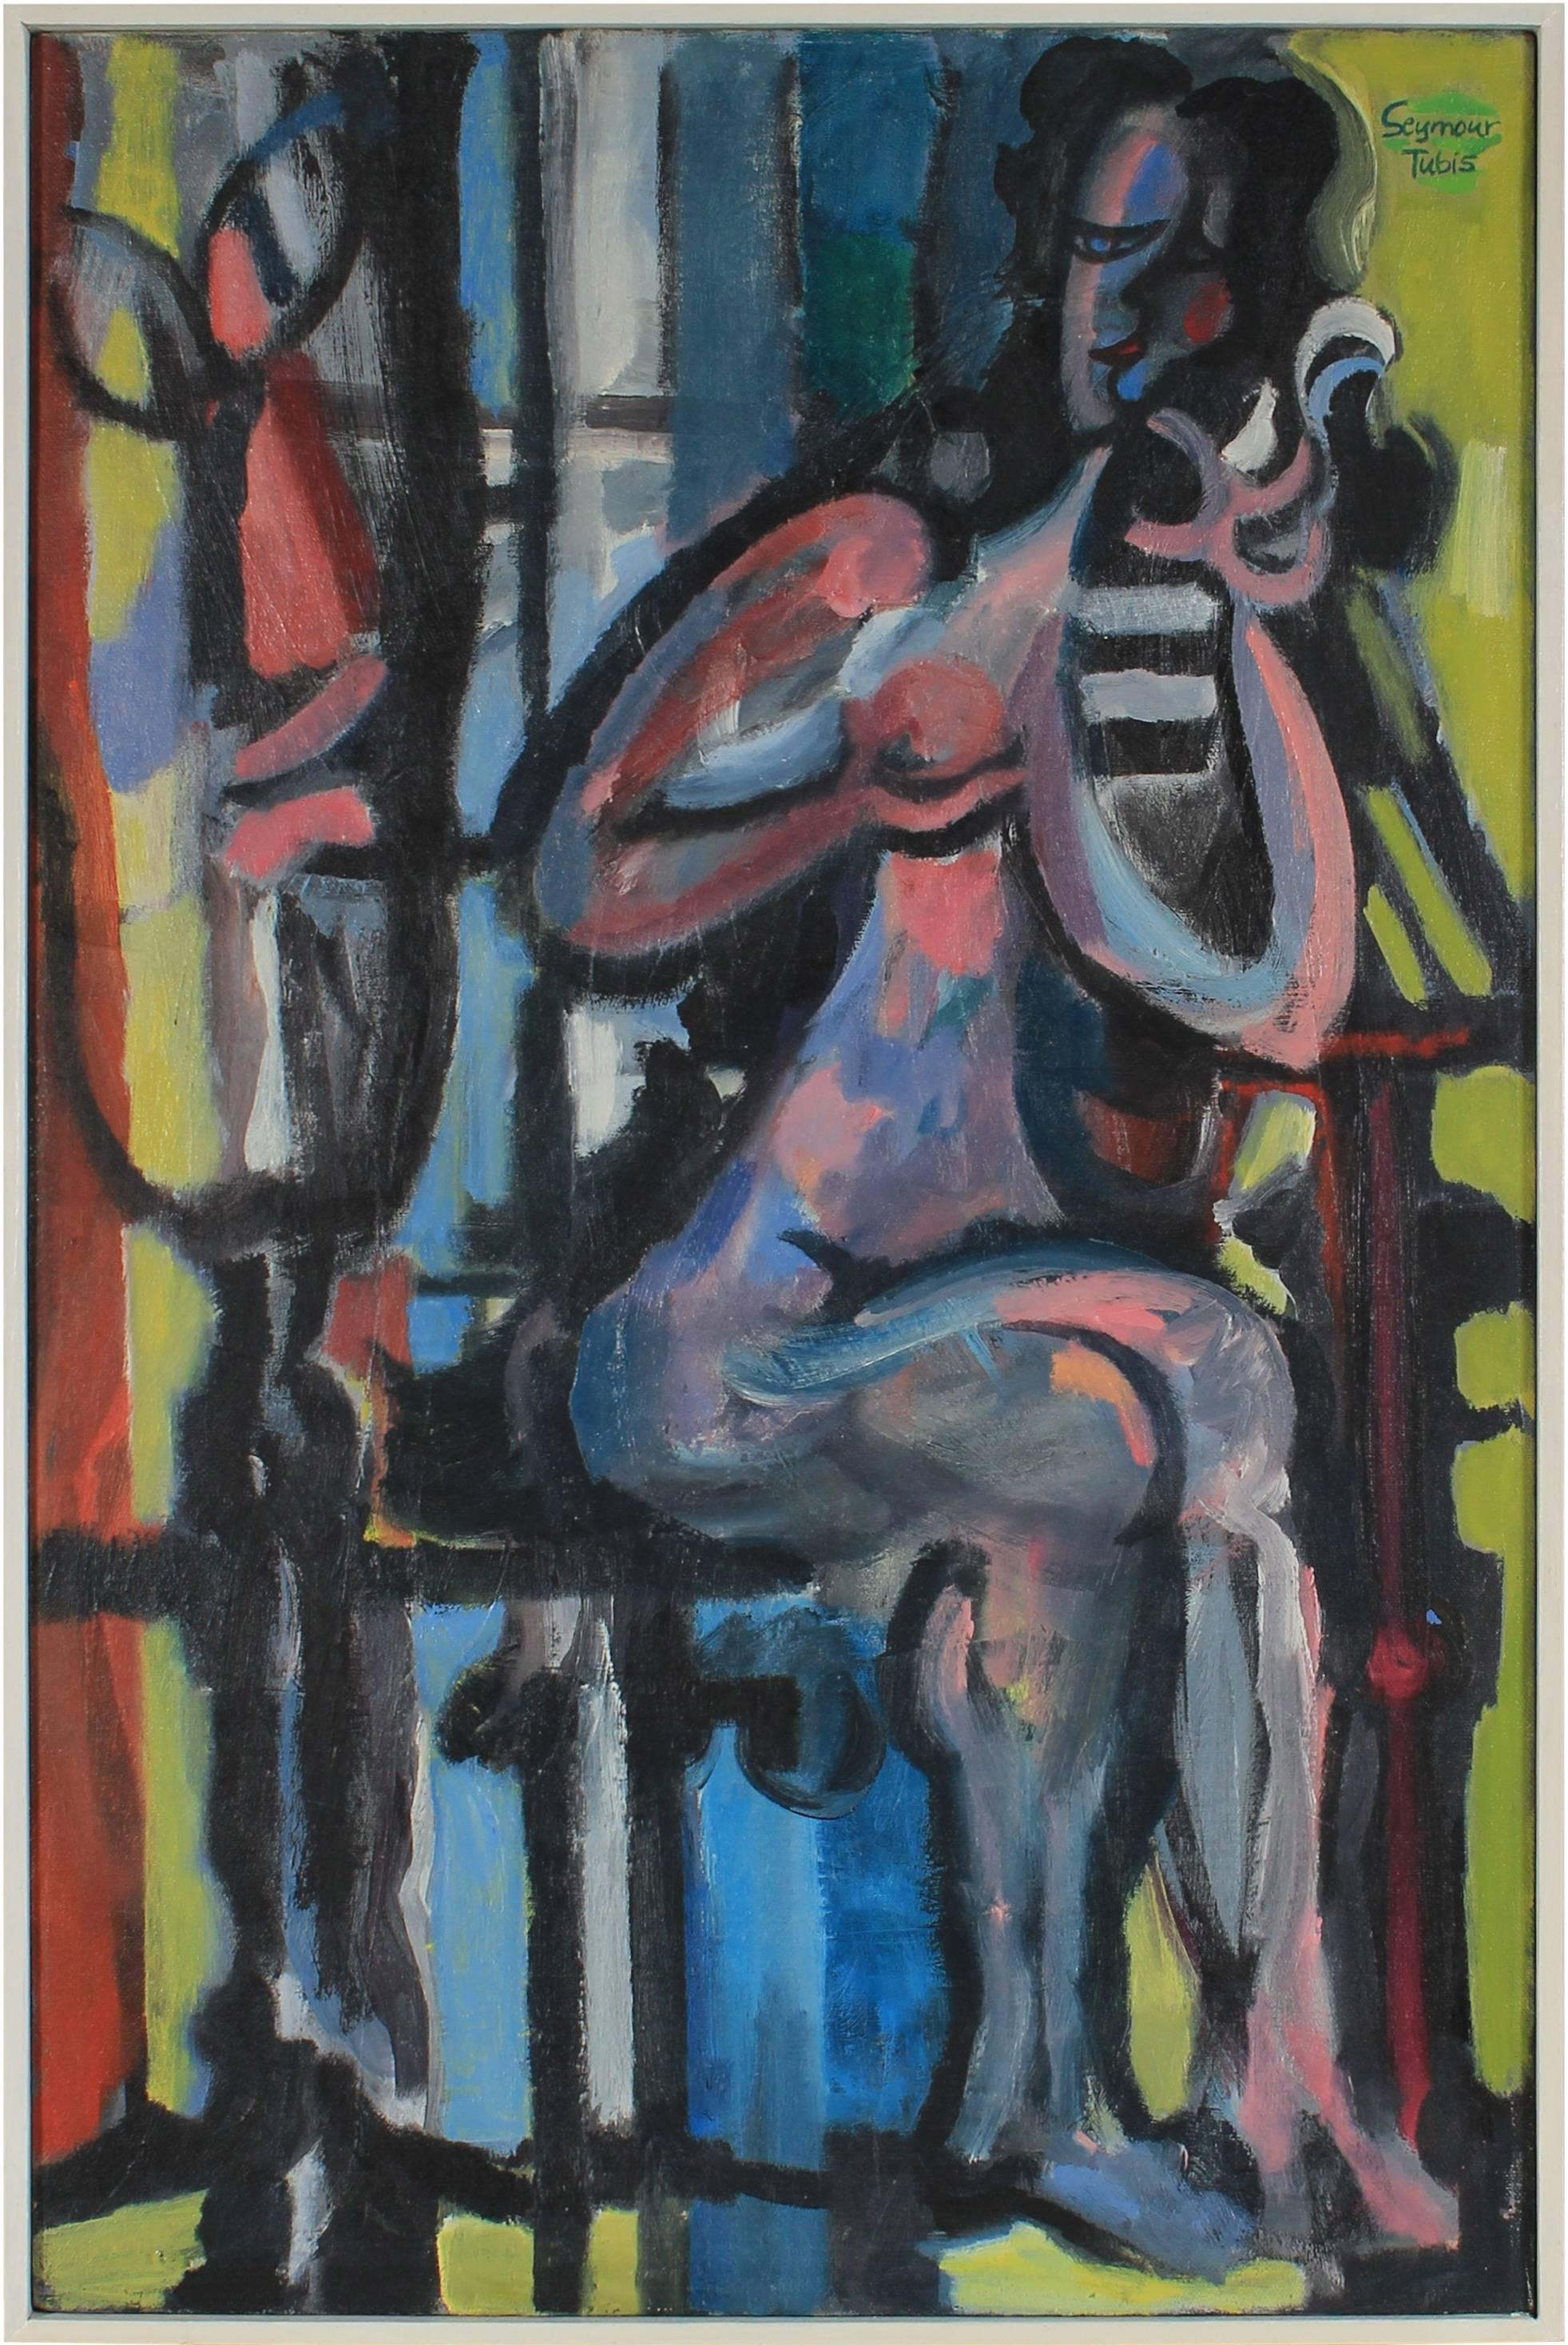 """""""The Face in the Mirror"""" Cubist Figure Painting in Oil, 1959"""